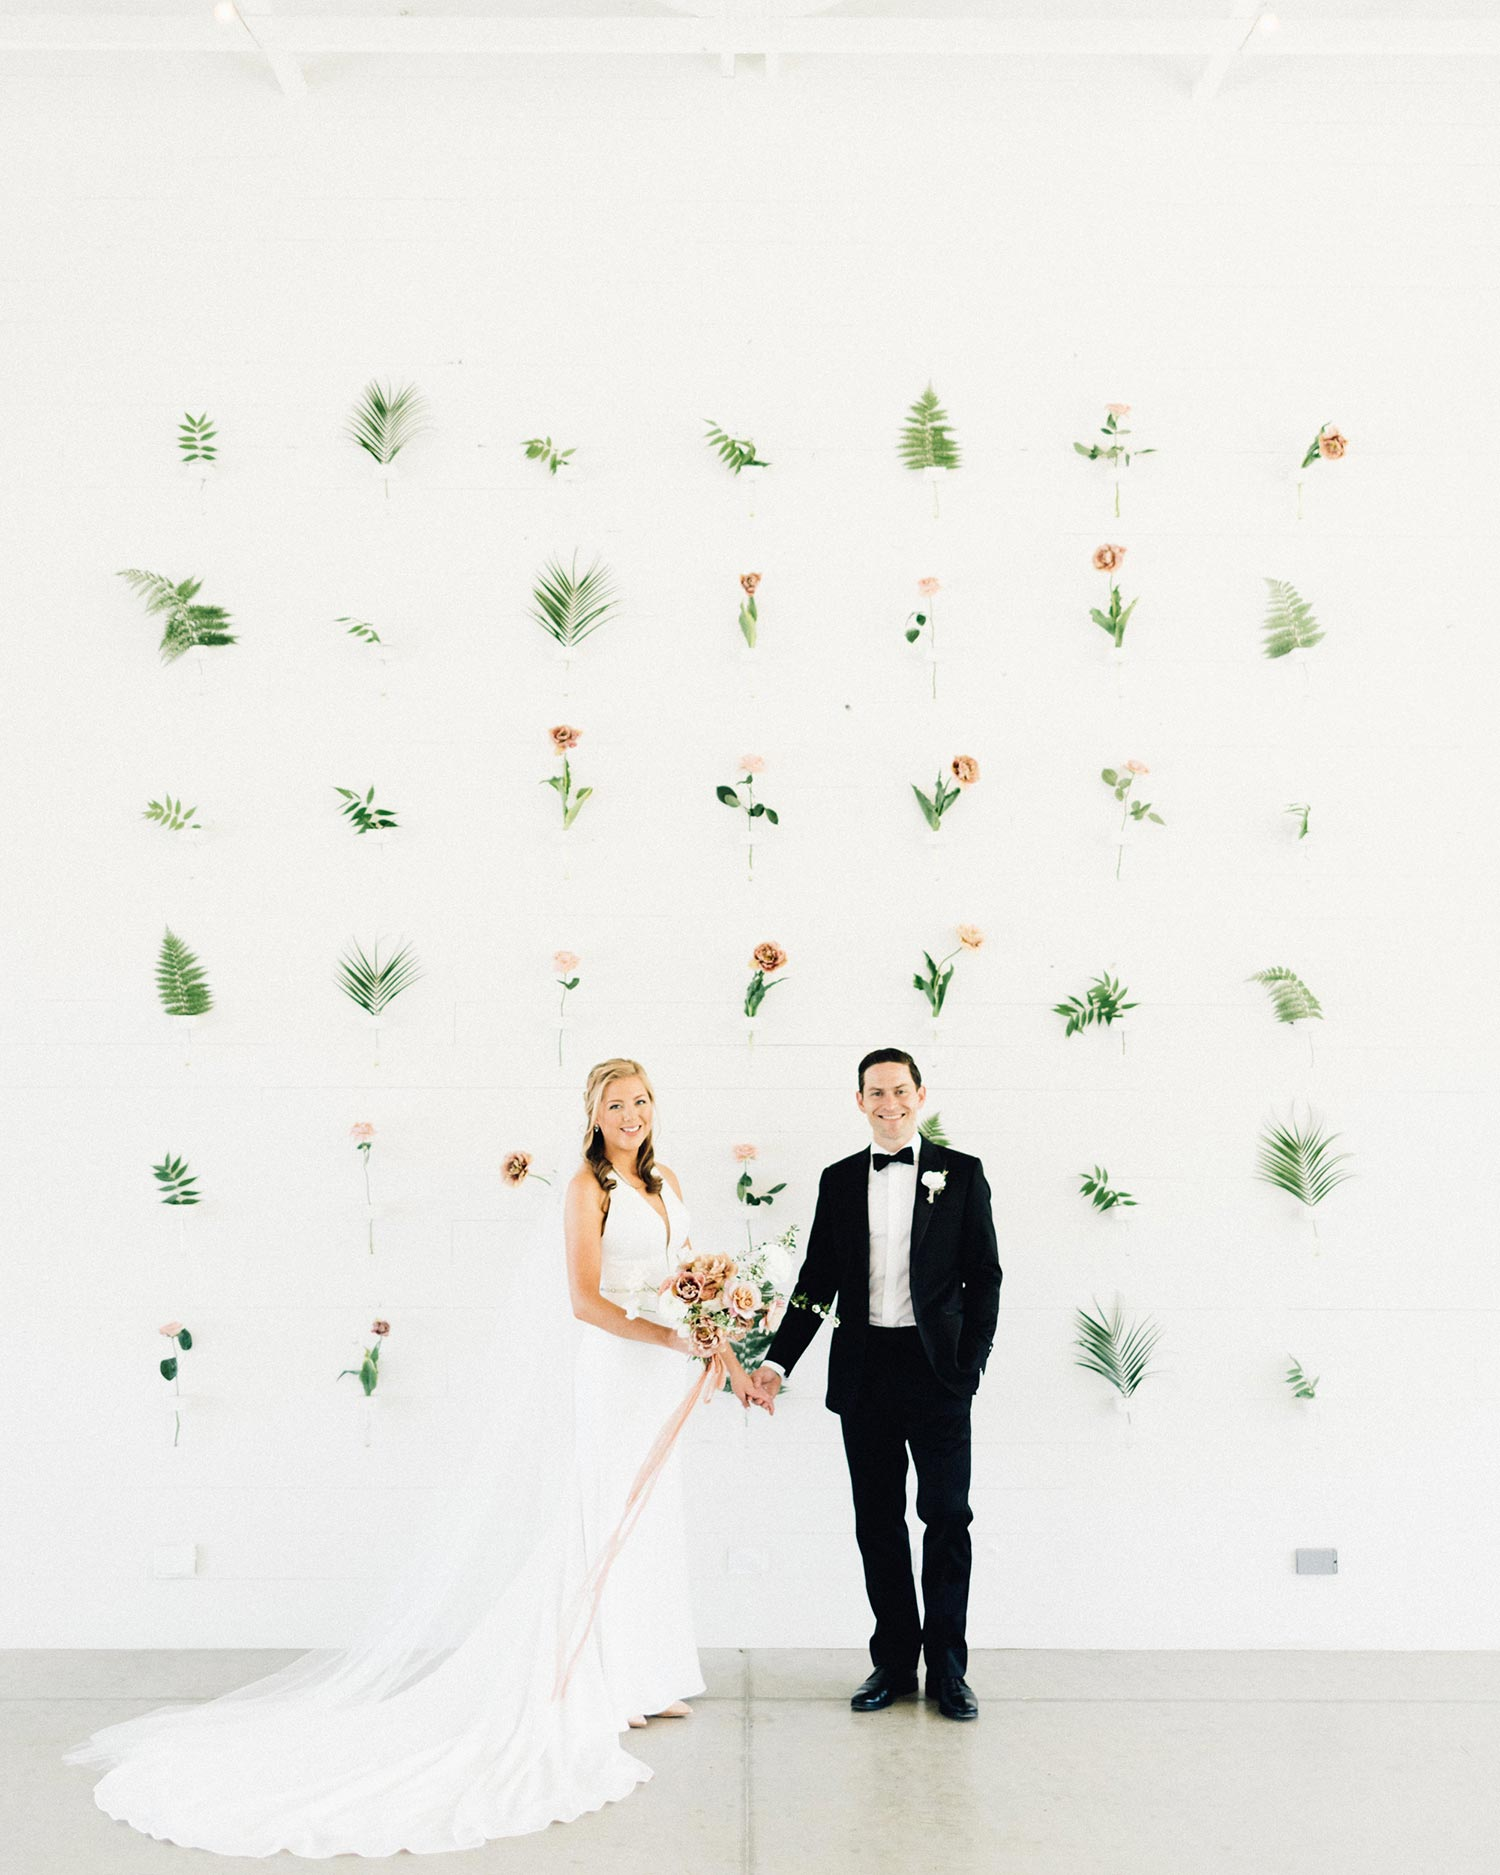 Bouquet & Floral Wall by Color Theory Collective